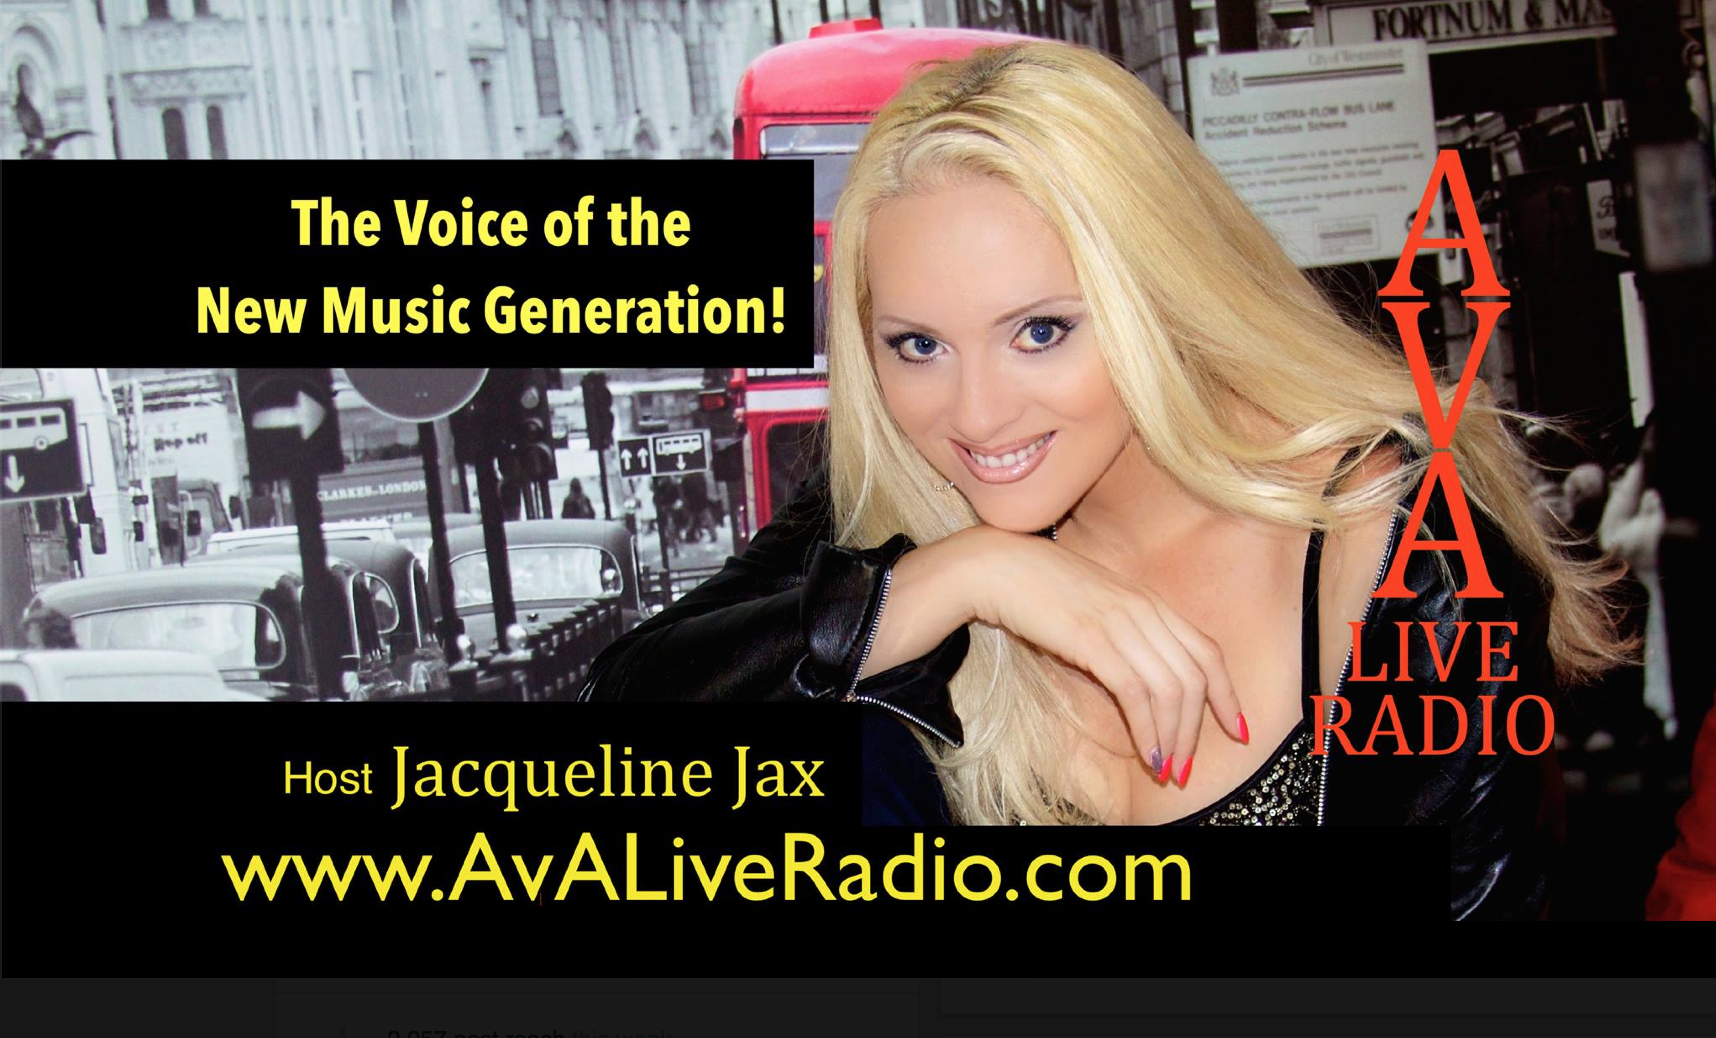 Episode #362 : A.V.A Live Radio Behind The Music with Jacqueline Jax